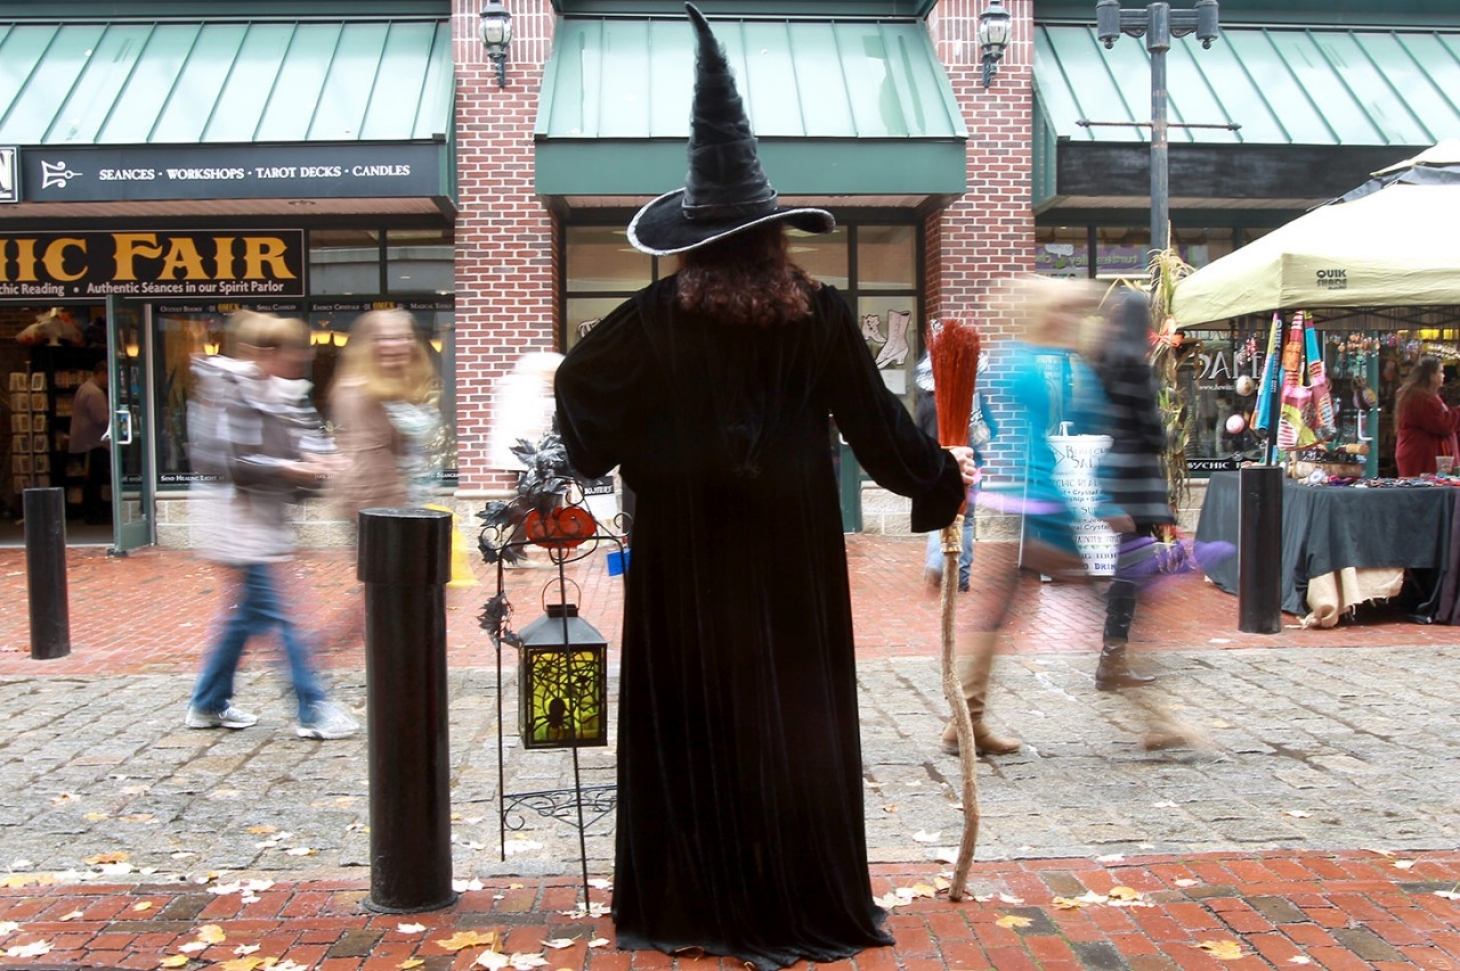 For the roots of Salem witch hysteria, look at the next town over